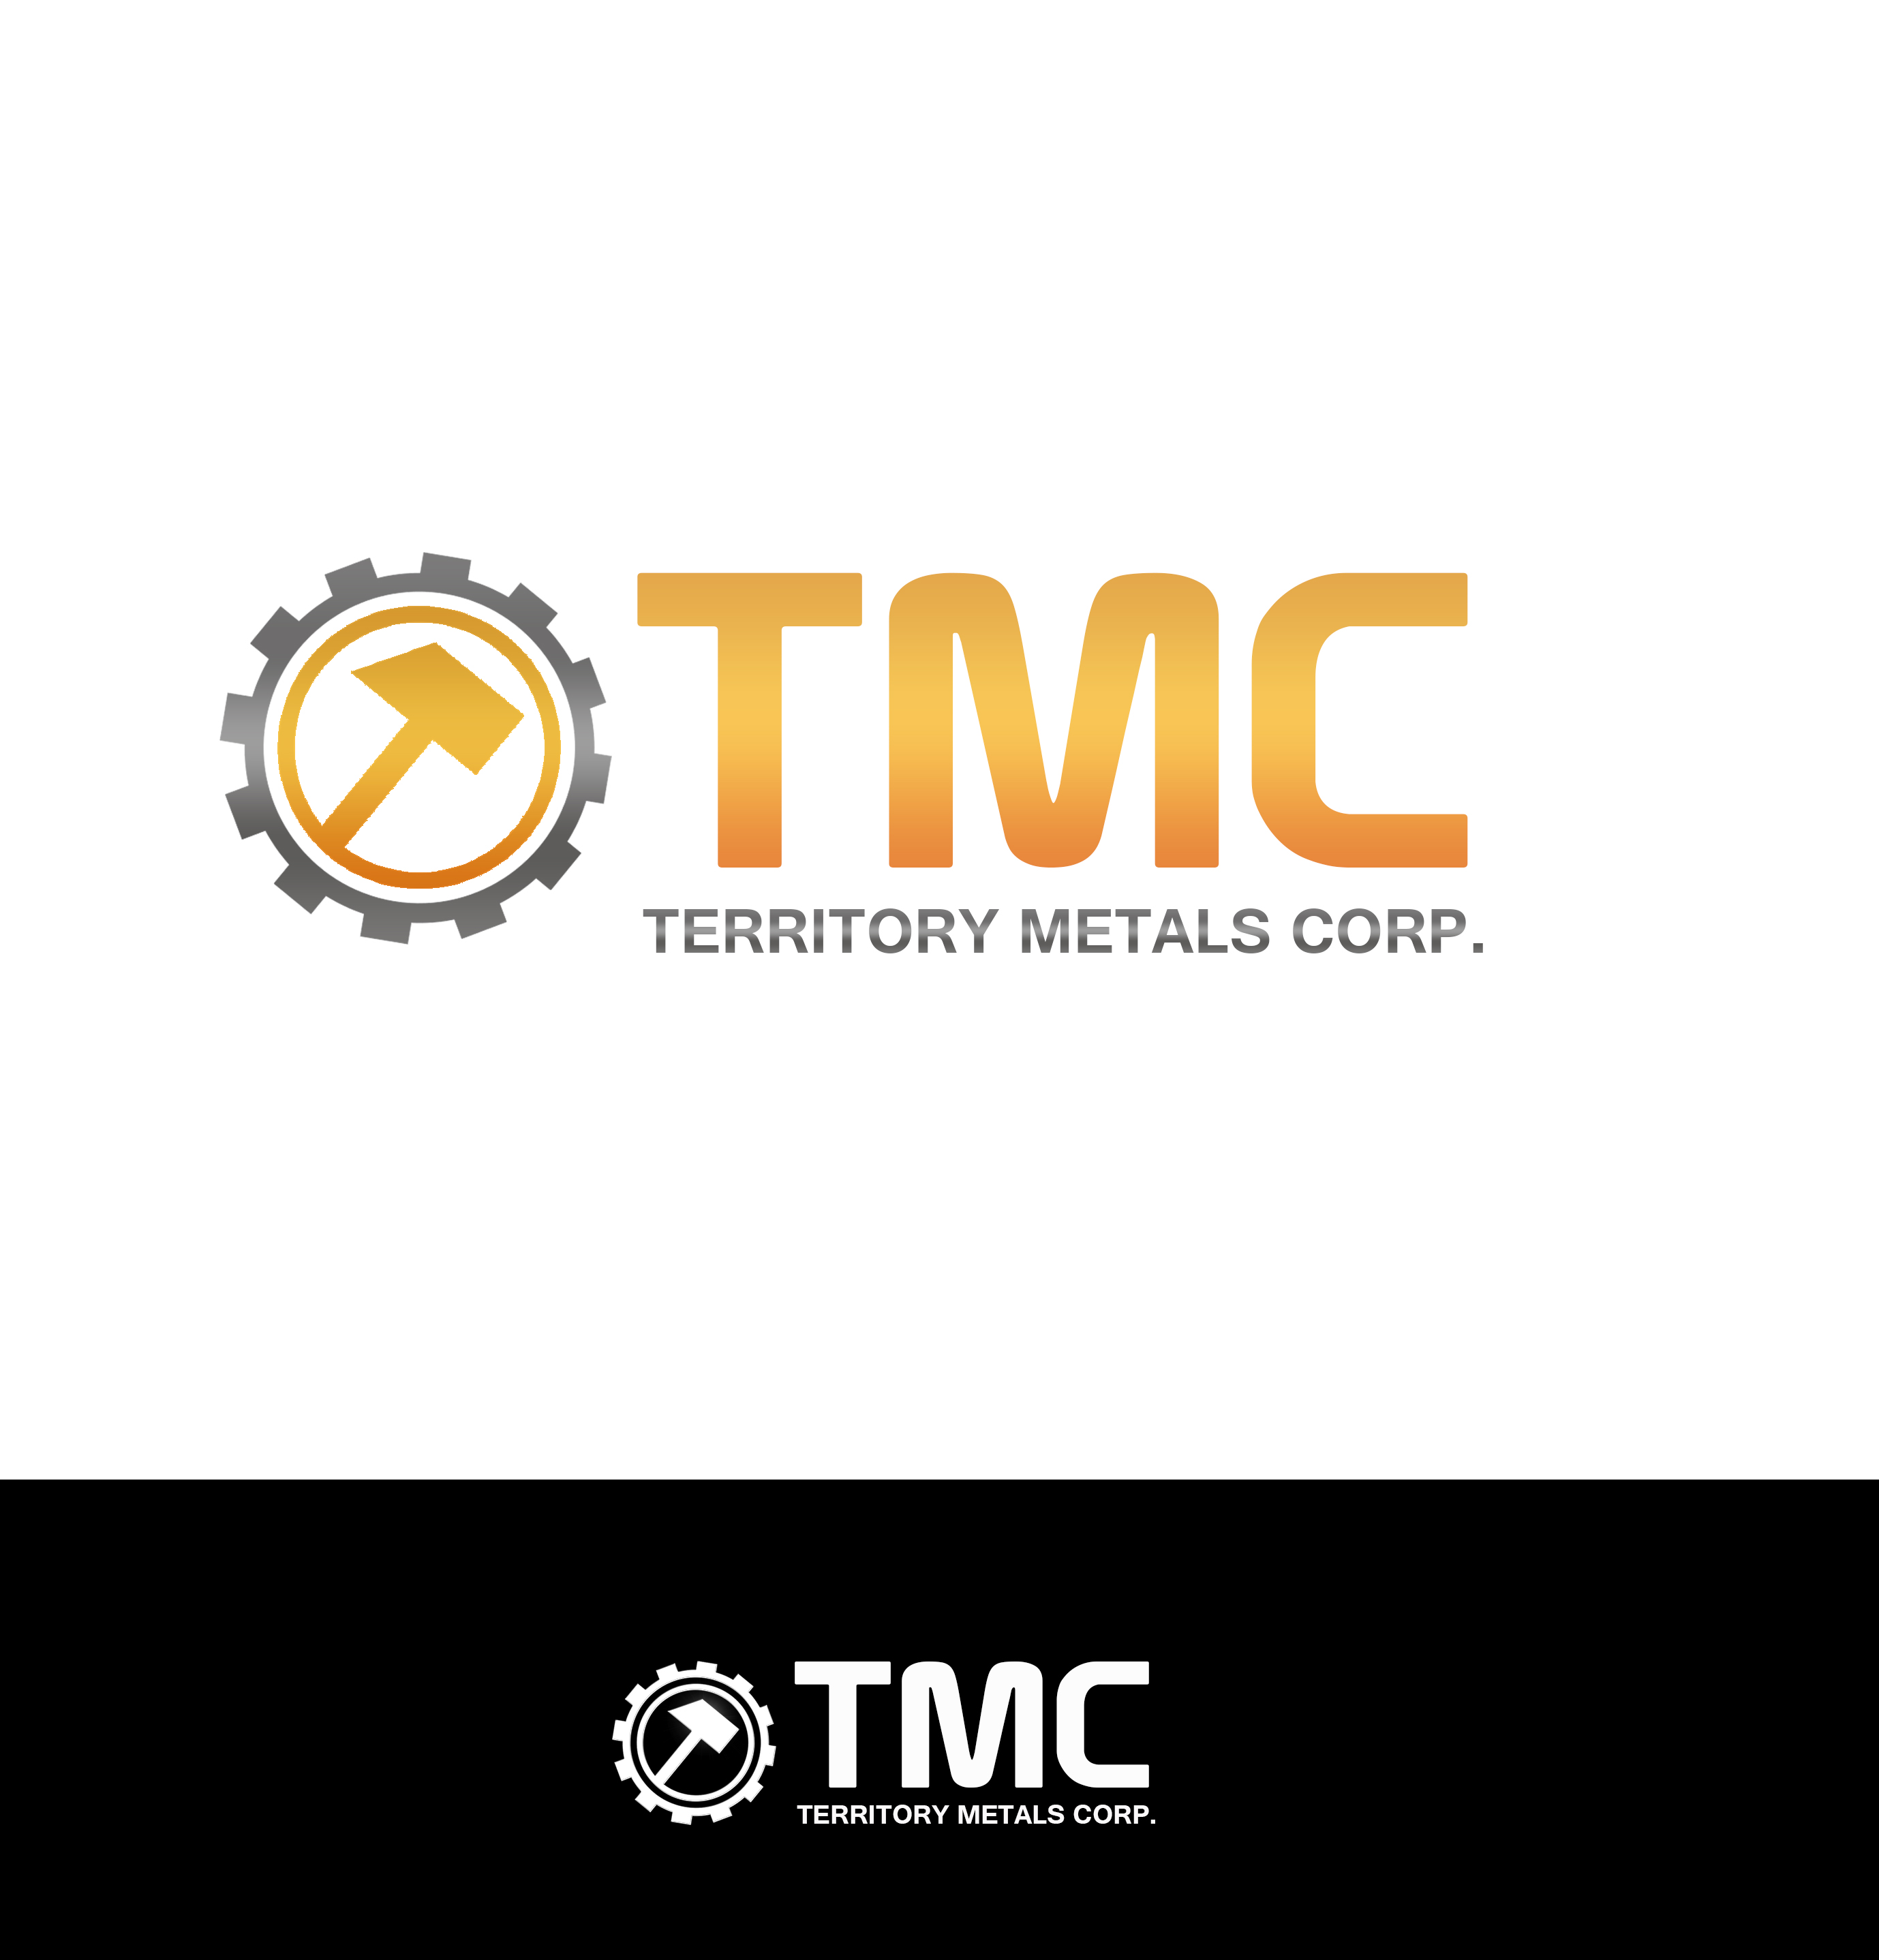 Logo Design by JSDESIGNGROUP - Entry No. 51 in the Logo Design Contest Unique Logo Design Wanted for Territory Metals Corp..